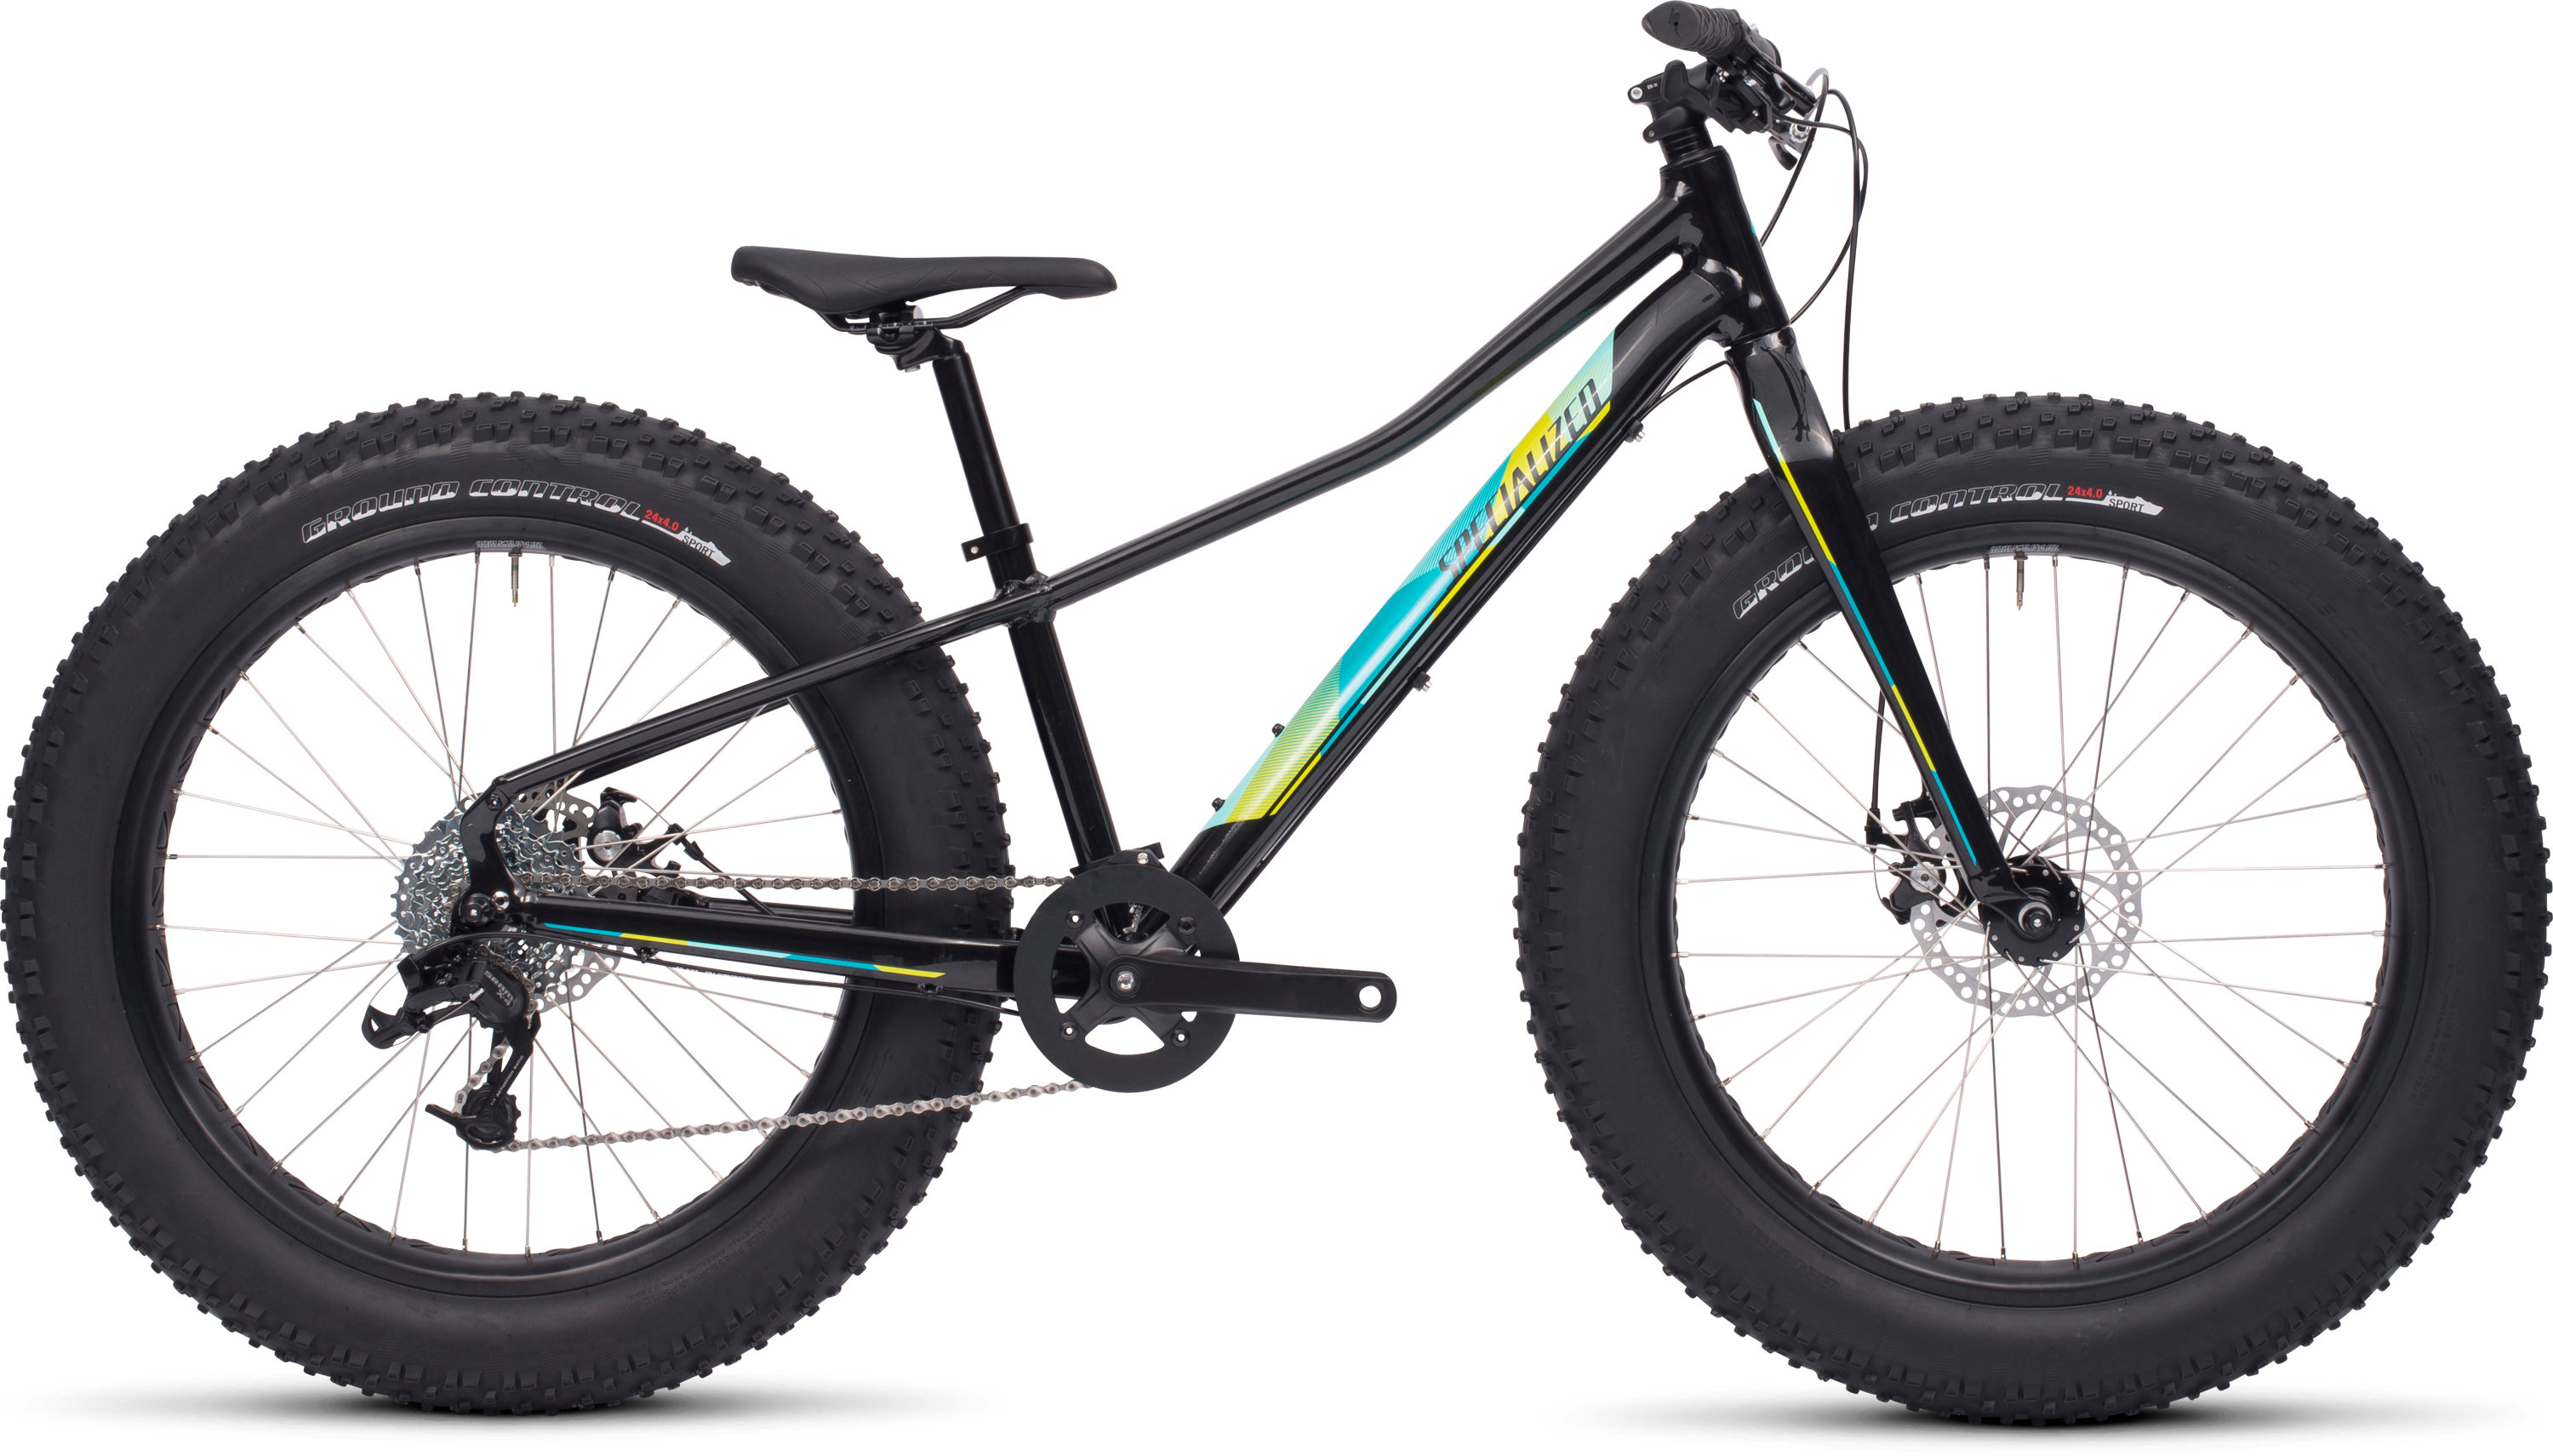 SPECIALIZED FATBOY 24 BLK/TUR/TUR/HYP GRN 12 - Bikedreams & Dustbikes